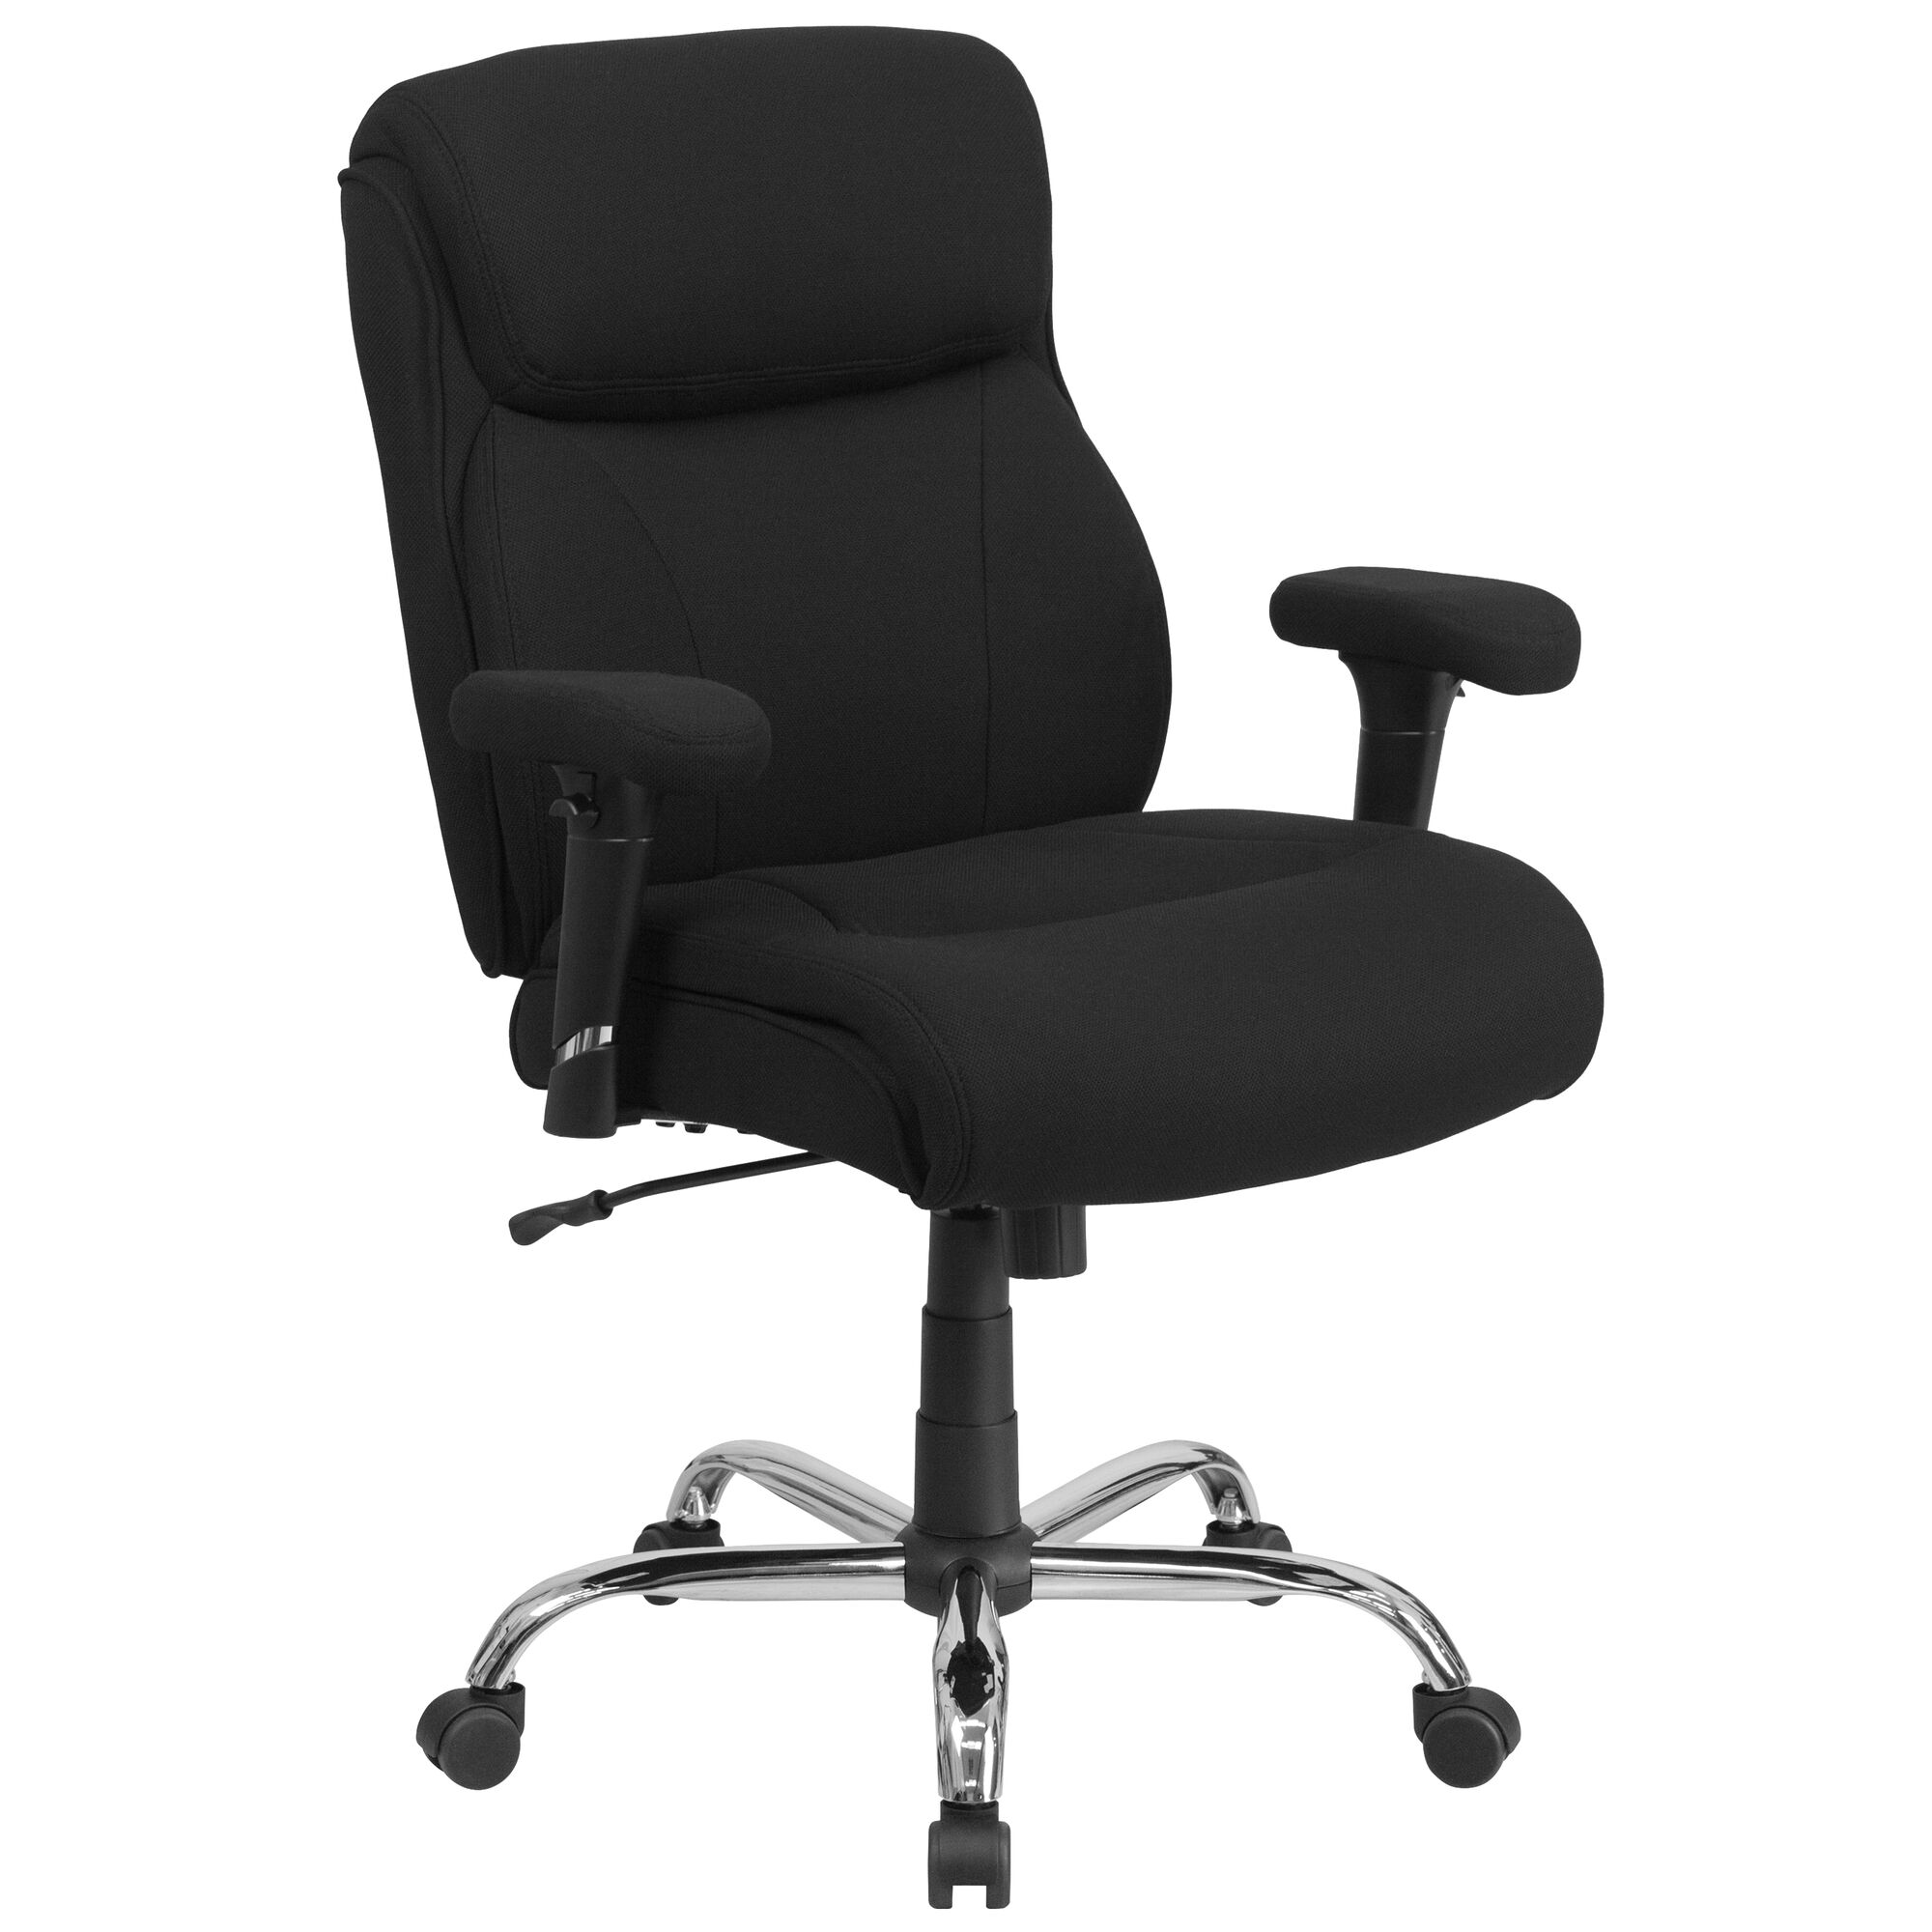 office chairs big and tall chairs at low budget prices bizchair com